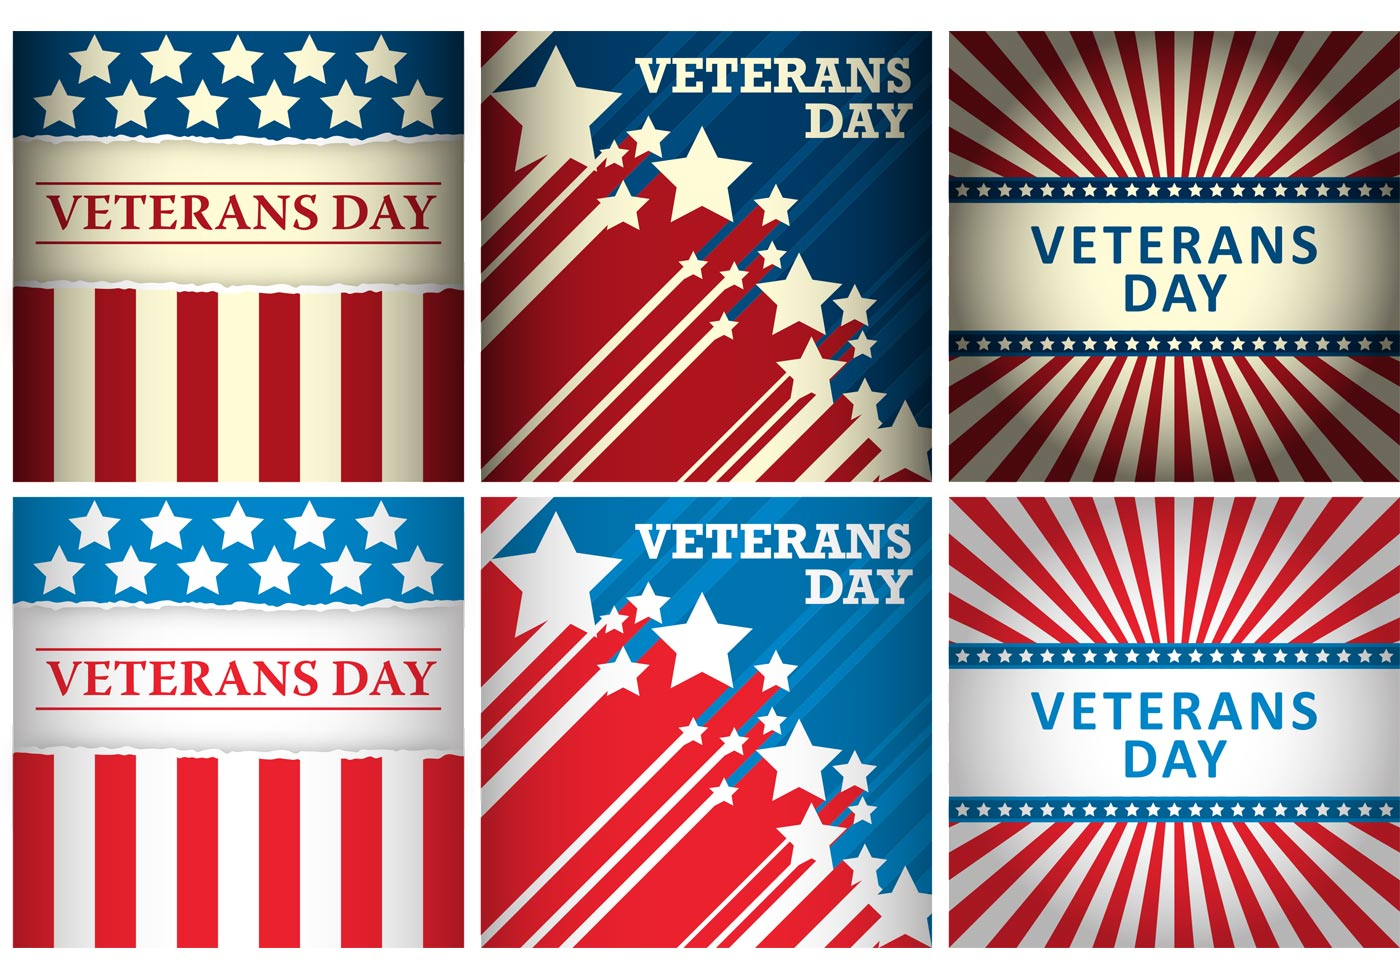 Happy Veterans Day Cards 2018, Thank You Greeting Ecards Free For - Veterans Day Free Printable Cards